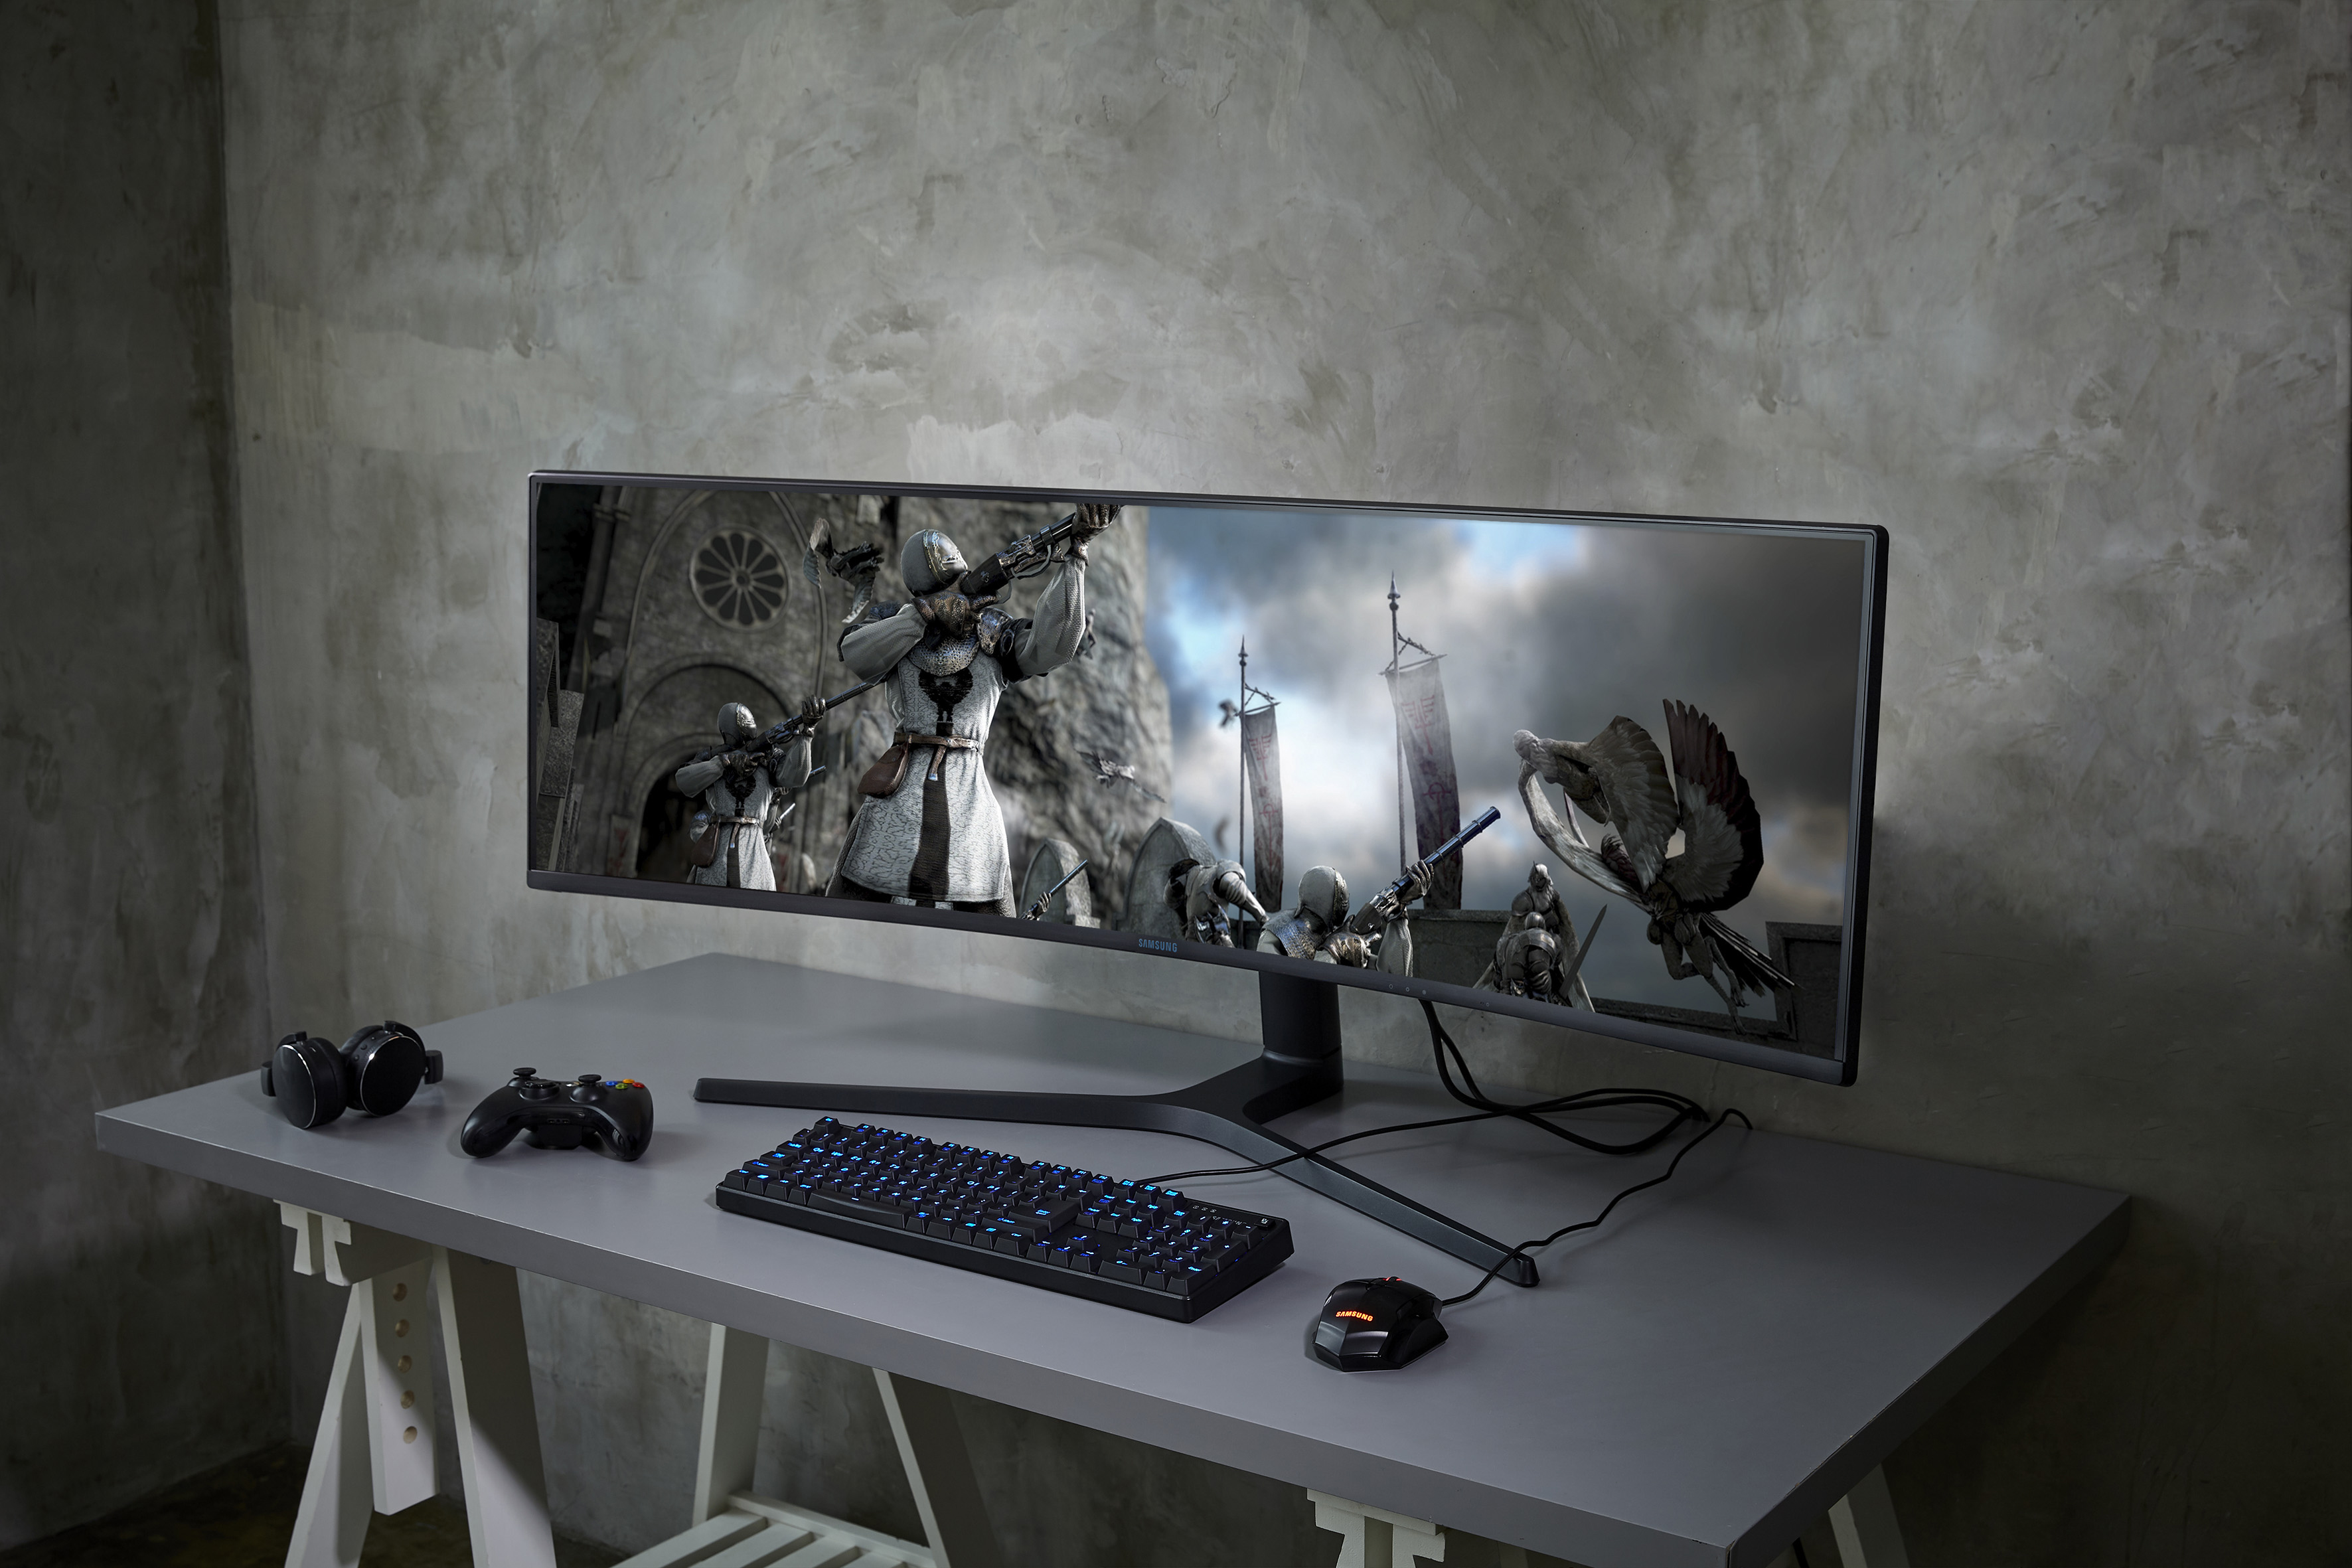 samsung crg9 super wide monitor 3-3